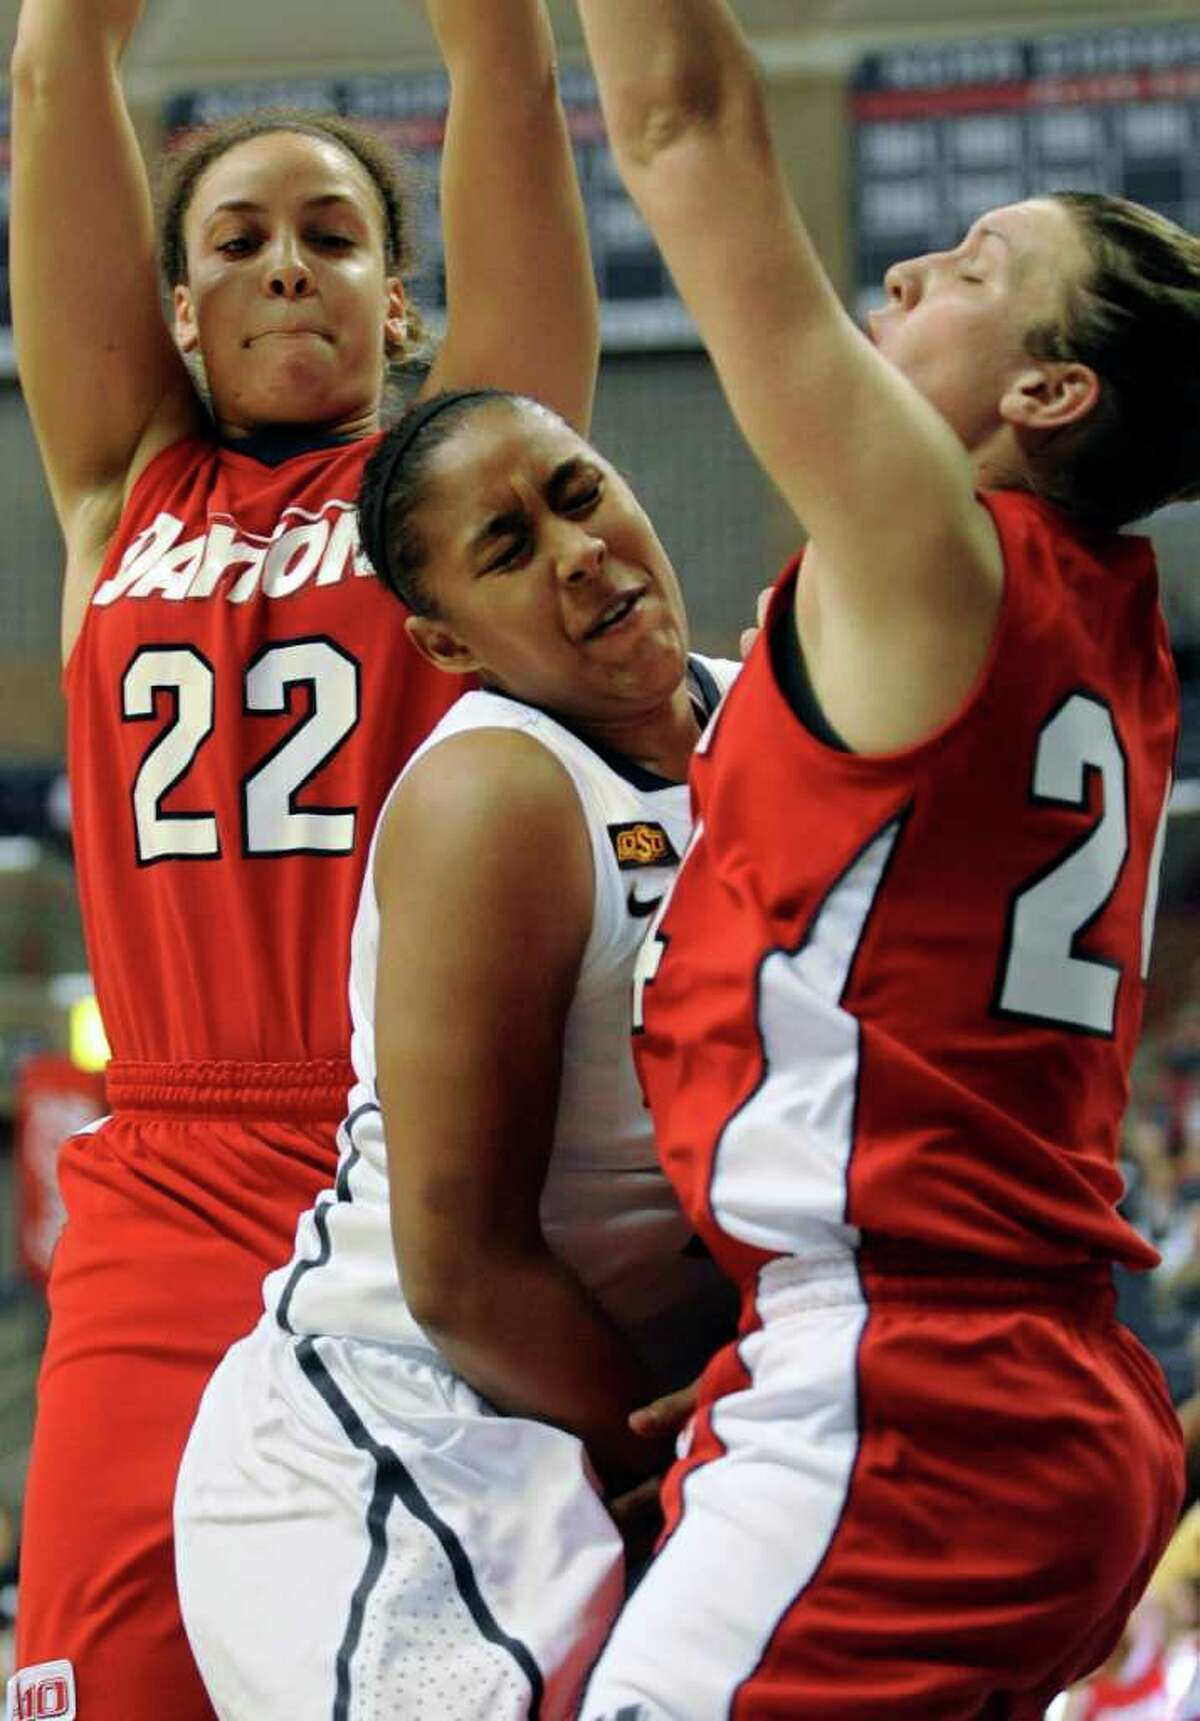 Connecticut's Kaleena Mosqueda-Lewis, center, is caught between Dayton's Casey Nance, left, and Andrea Hoover, right, as she drives to the basket in the first half of an NCAA college basketball game in Storrs, Conn., Sunday, Nov. 27, 2011. Mosqueda-Lewis led Connecticut with 23 points in the 78-38 victory. It was the team's 89th straight win at home to set an NCAA record. (AP Photo/Jessica Hill)